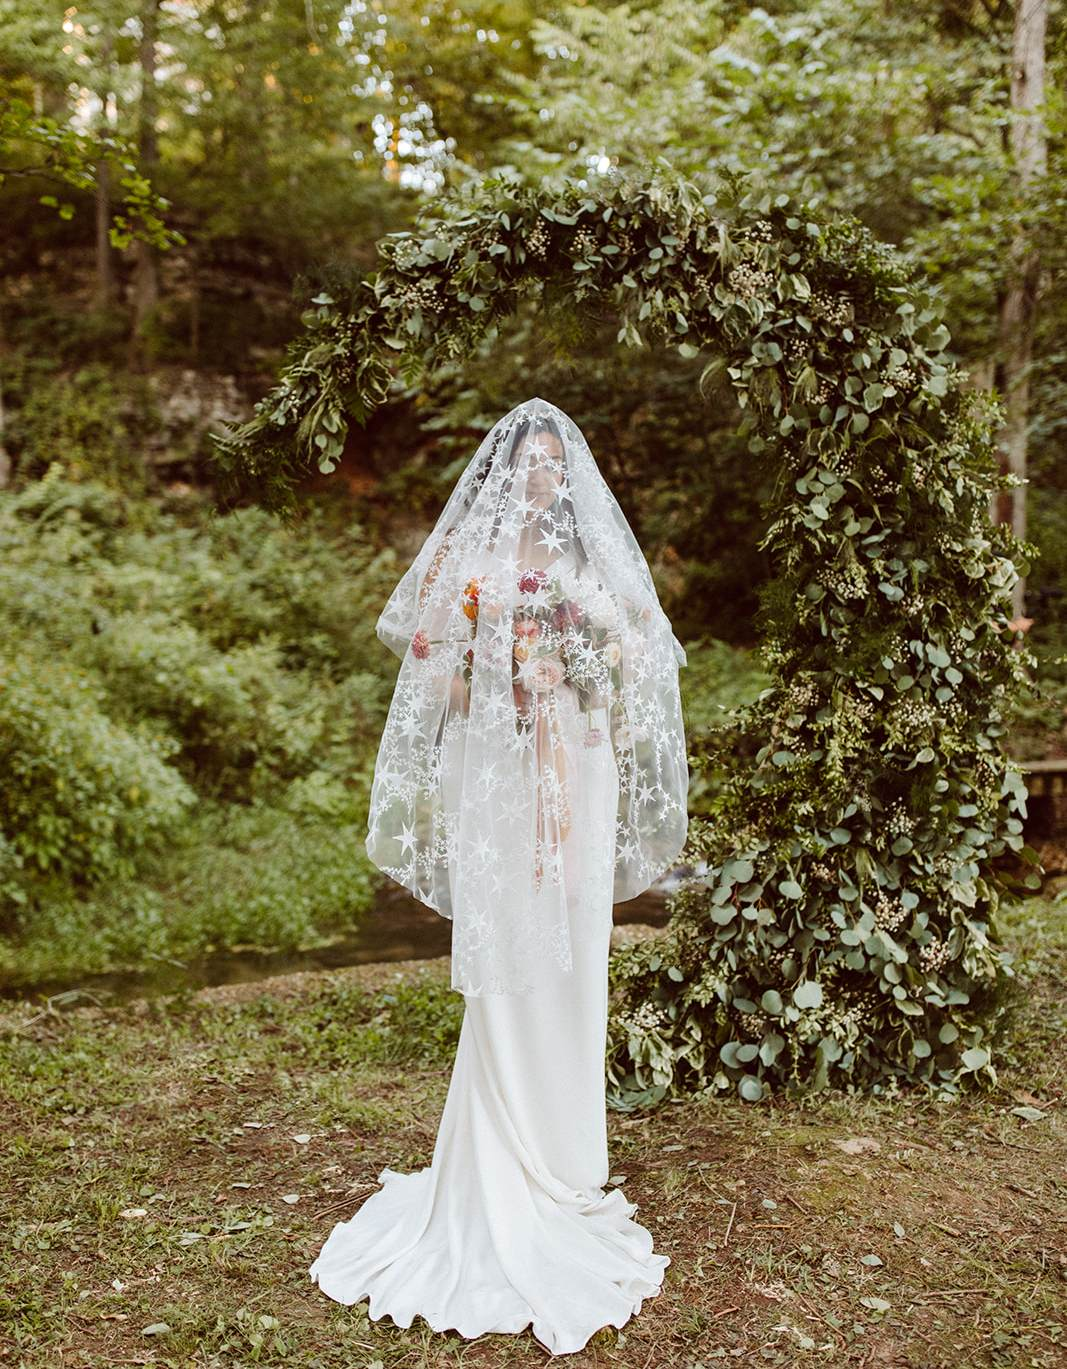 Veiled bride standing in front of a mystic moon installation